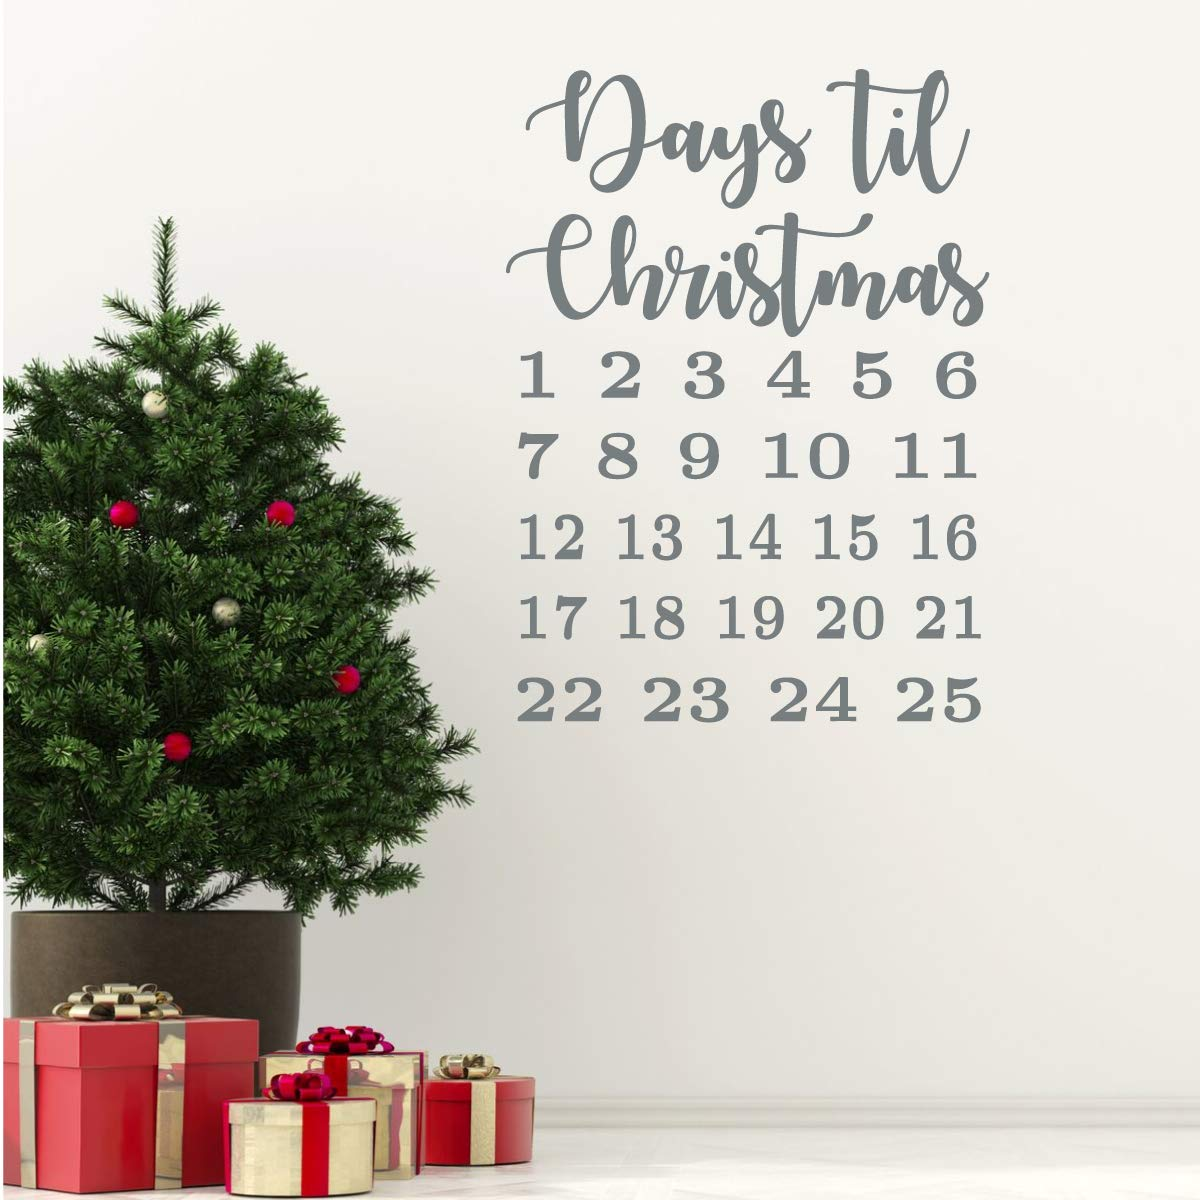 Christmas Countdown Calendar.Christmas Countdown Calendar Decal Vinyl Decor Wall Decal